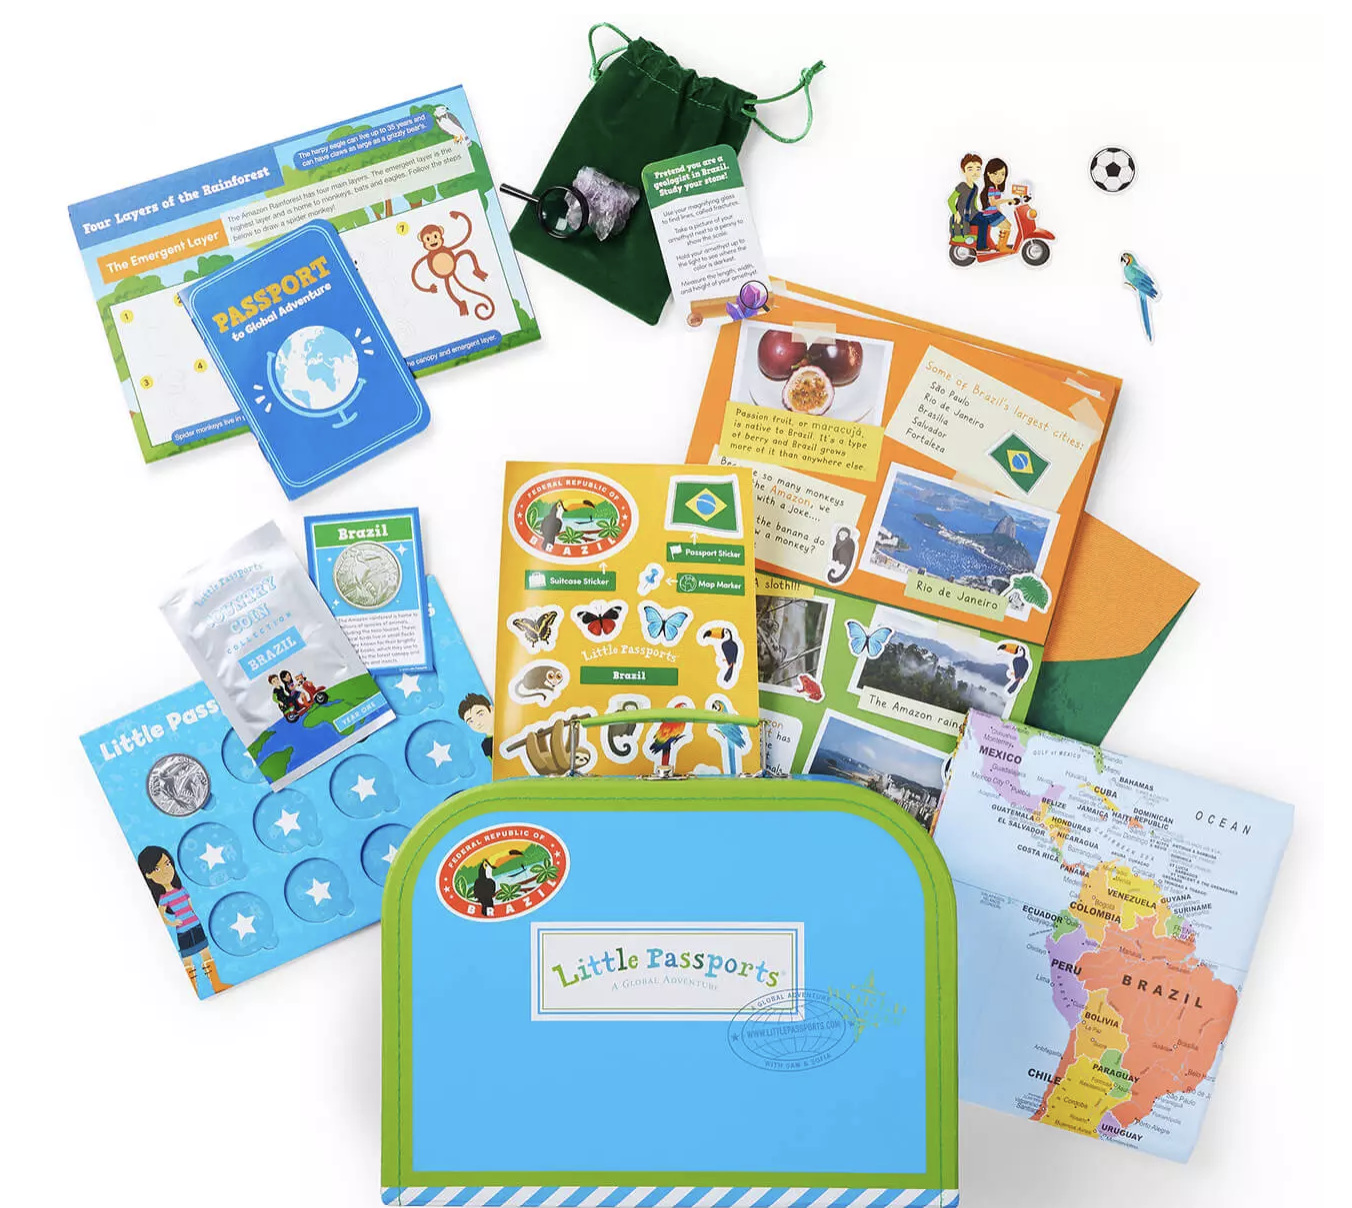 An array of colorful items against a white backdrop, including a mini suitcase, map, stickers, and fake passport